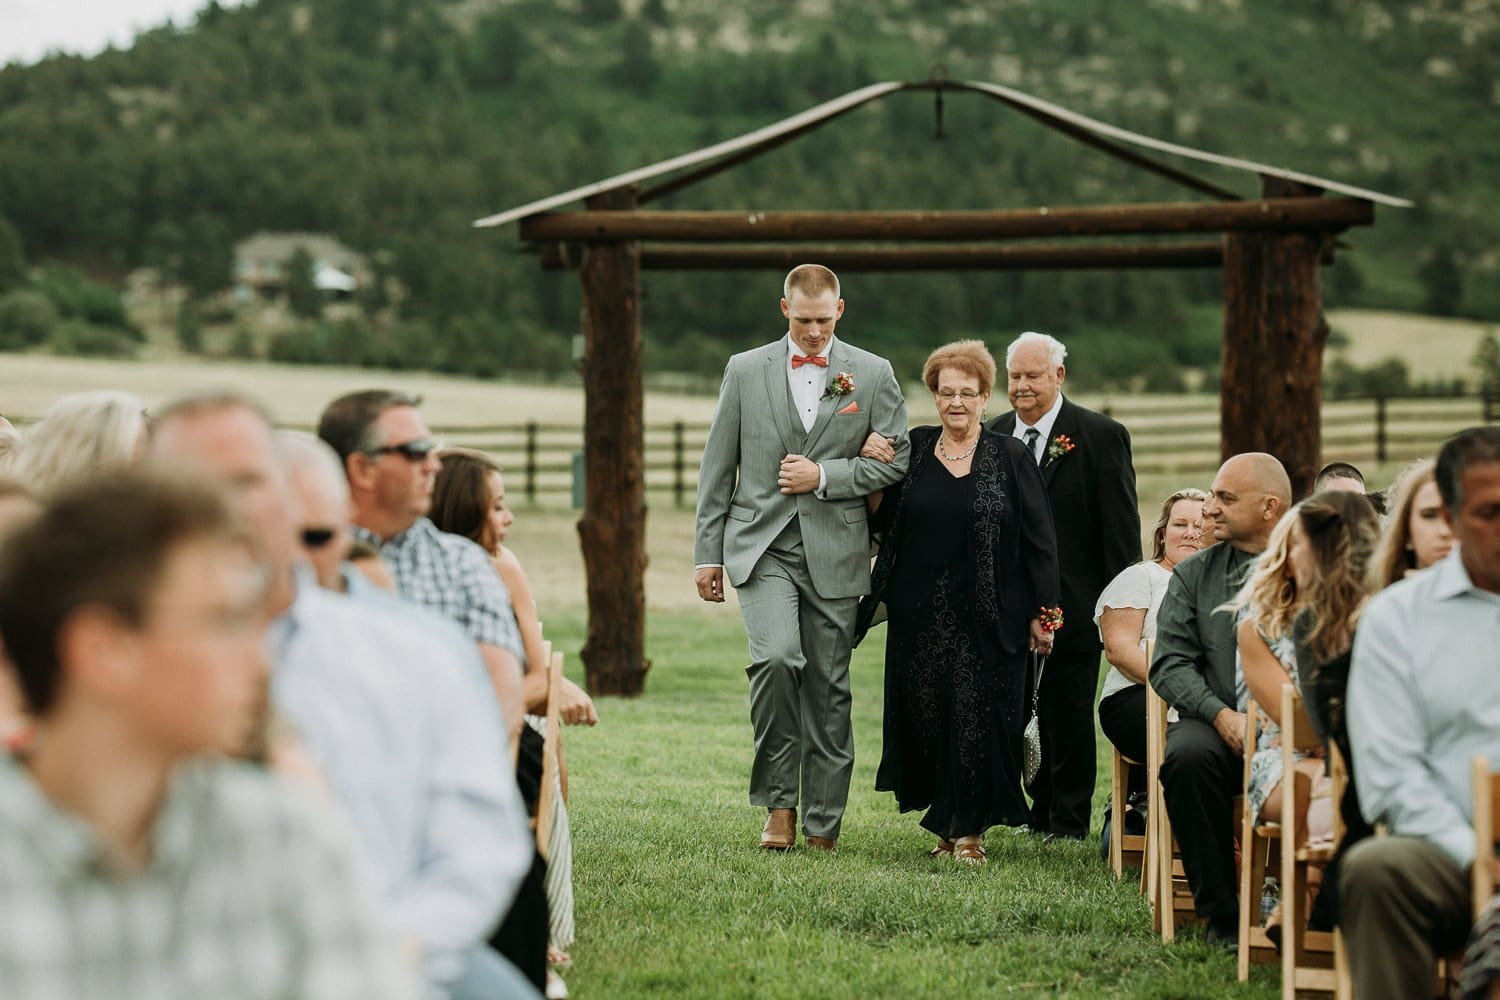 SPRUCE MOUNTAIN RANCH INTIMATE WEDDING|JUSTYNA E BUTLER PHOTOGRAPHY|MOUNTAIN INTIMATE WEDDING|FOOTHILLS INTIMATE WEDDING|COLORADO MOUNTAIN WEDDING PHOTOGRAPHER|COLORADO WEDDING PHOTOGRAPHER|MATTIE+ AUSTIN